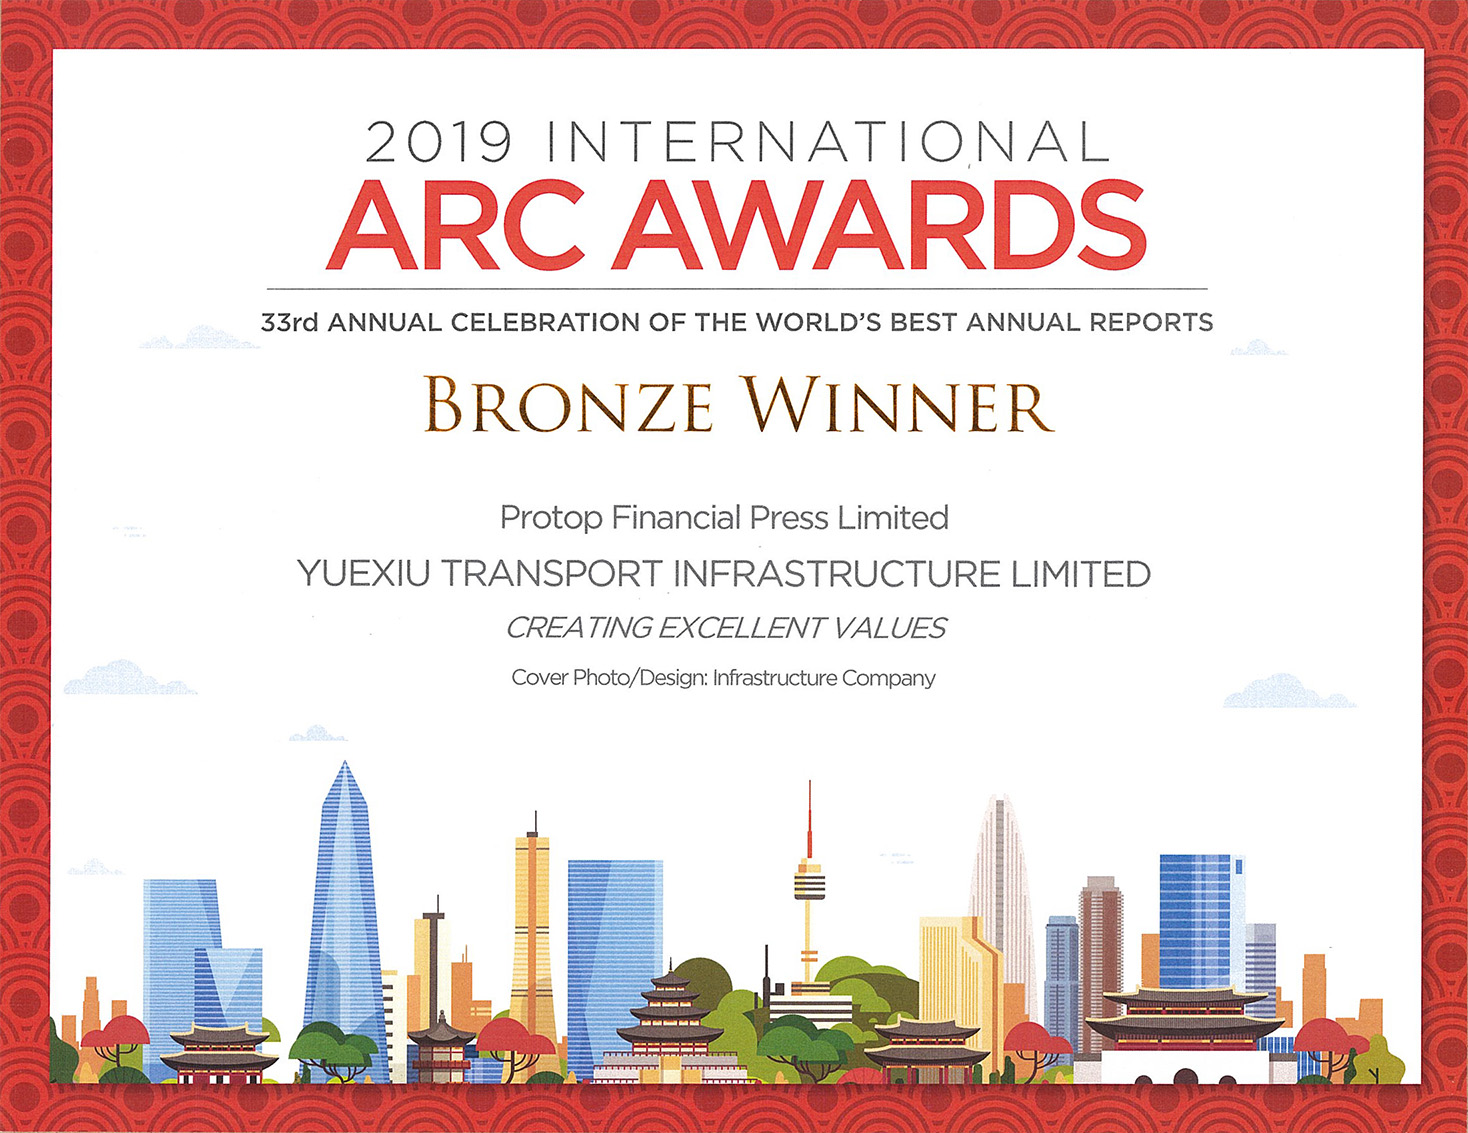 越秀交通基建有限公司 – 2019 ARC AWARDS BRONZE WINNER Cover Photo/Design: Infrastructure Company